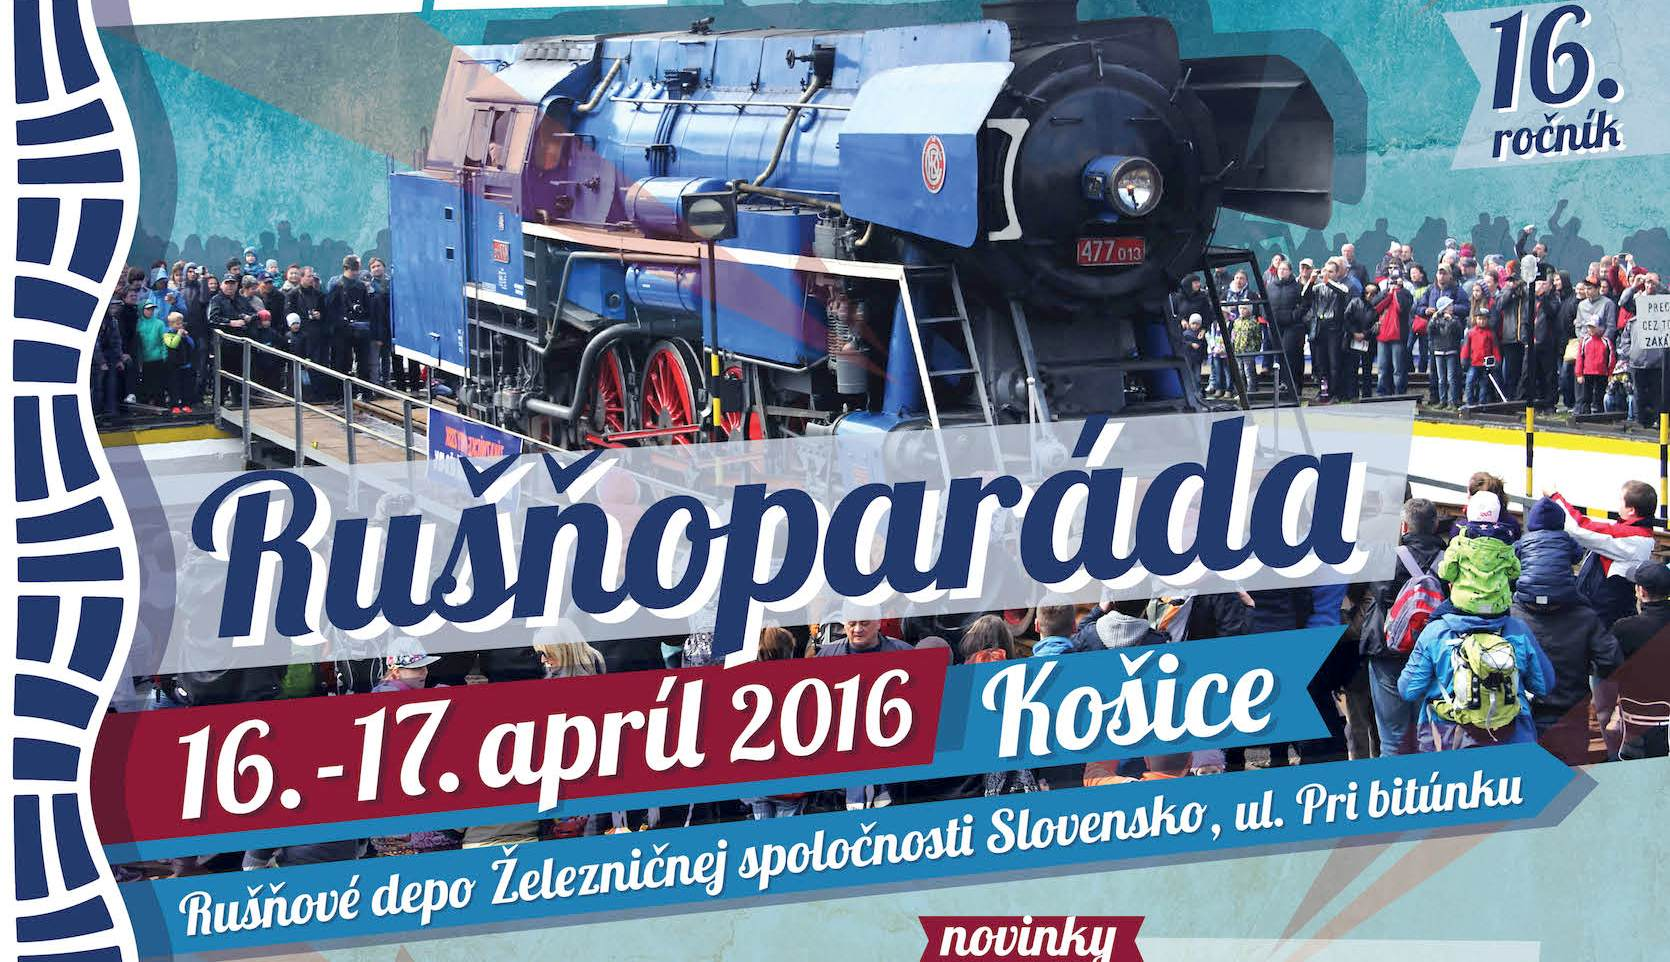 20160411111054_program_rusnoparada2016_baner.jpg